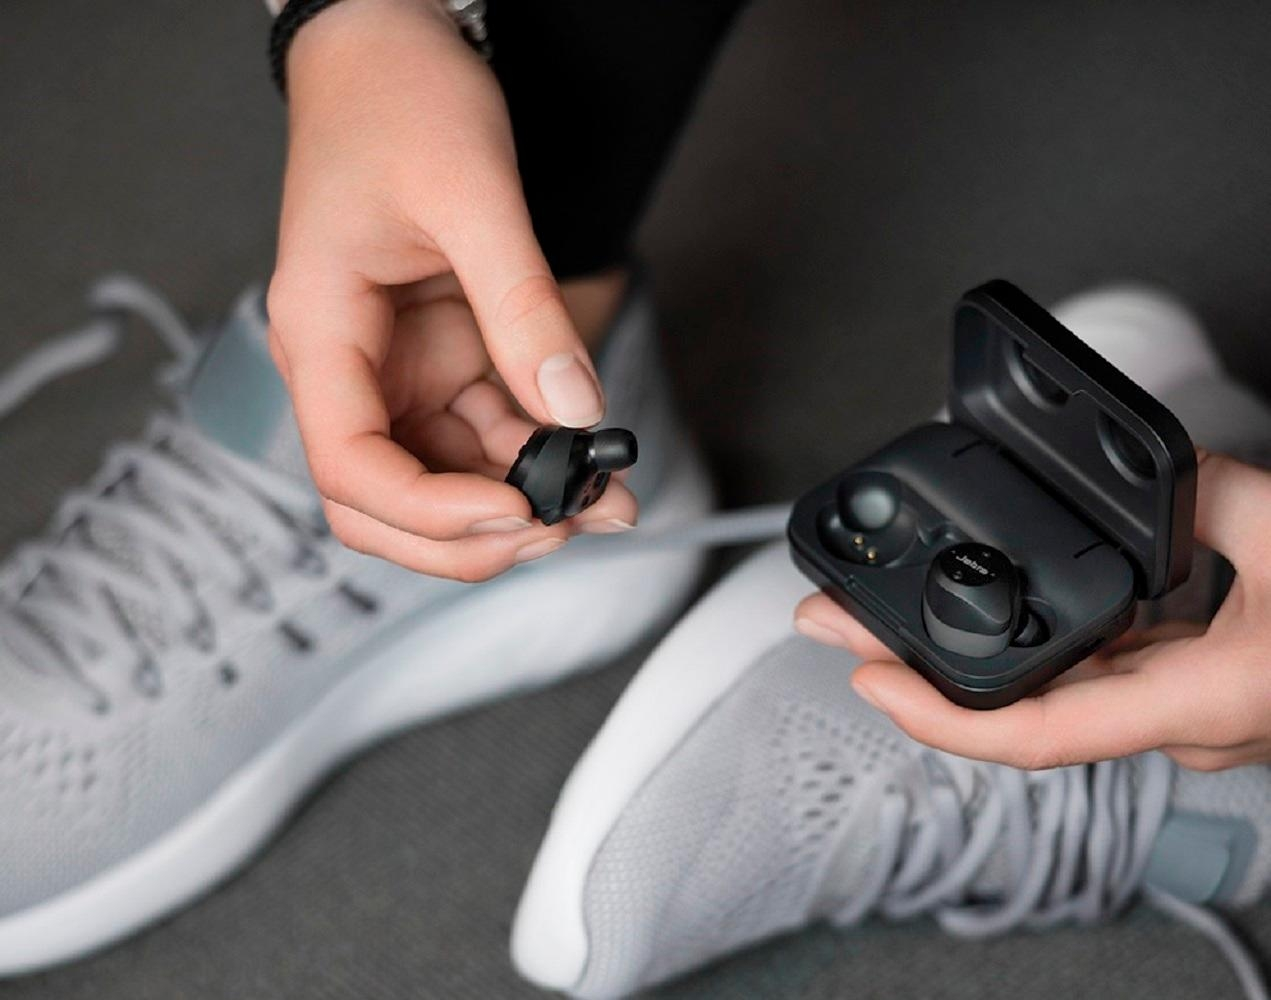 Tai Nghe Bose SoundSport Free: True Wireless Earbuds